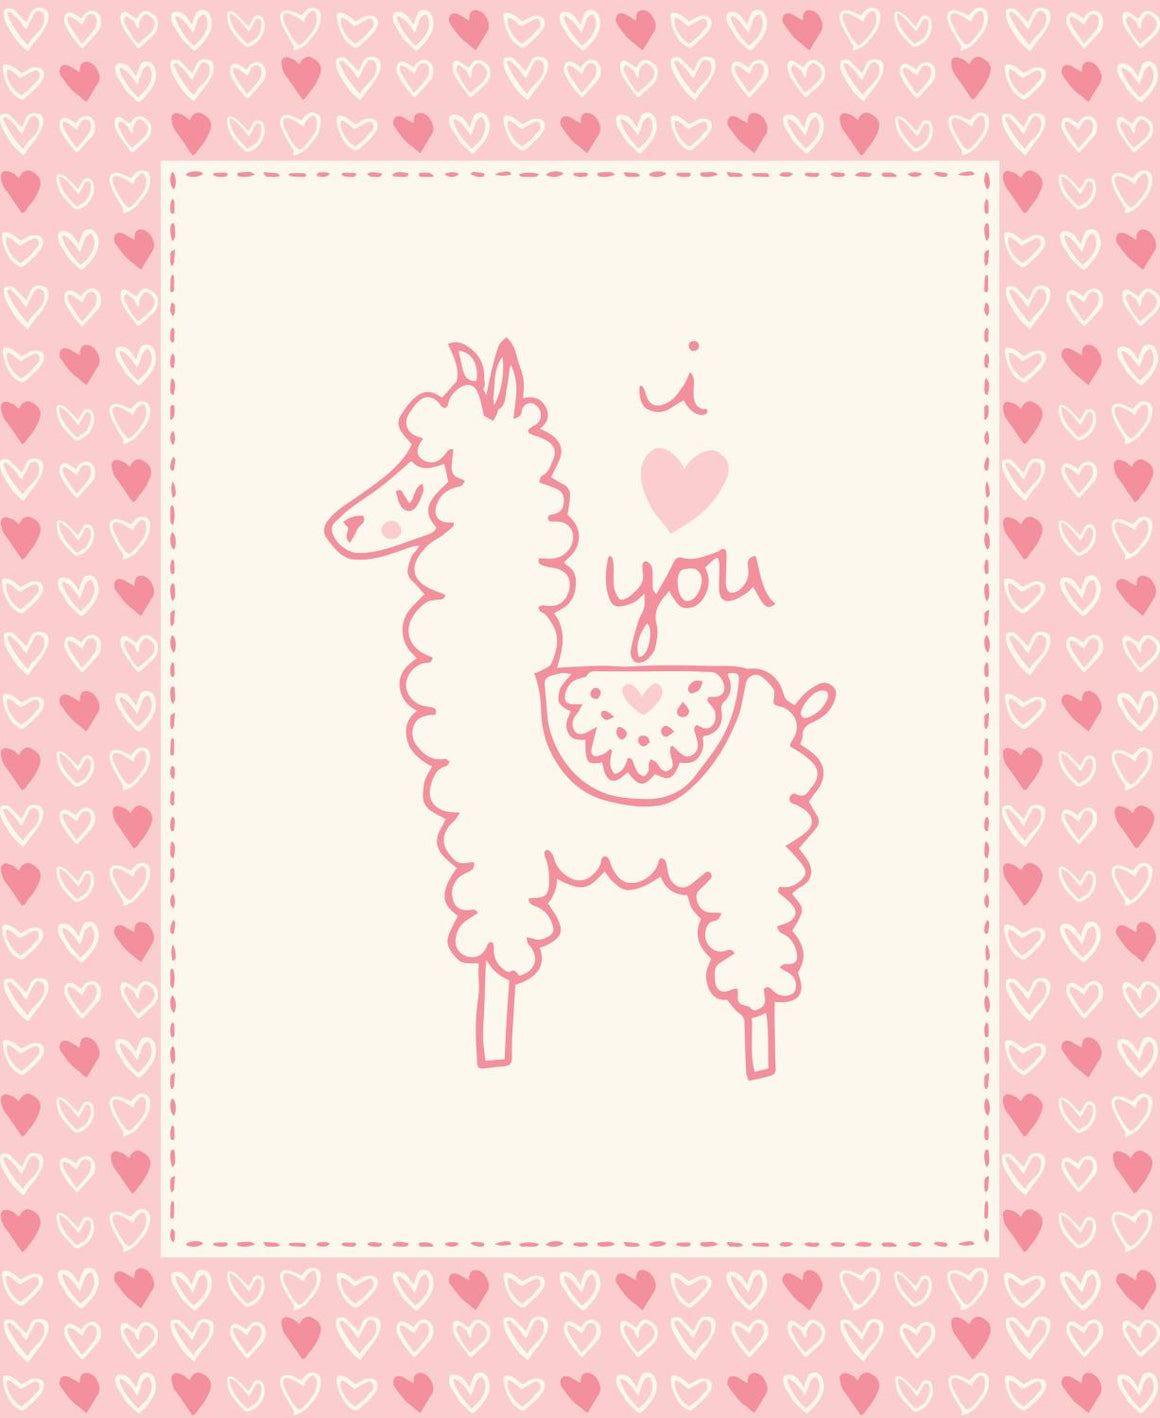 Soft & Sweet Flannel: Llama Llama Quilt Panel Pink